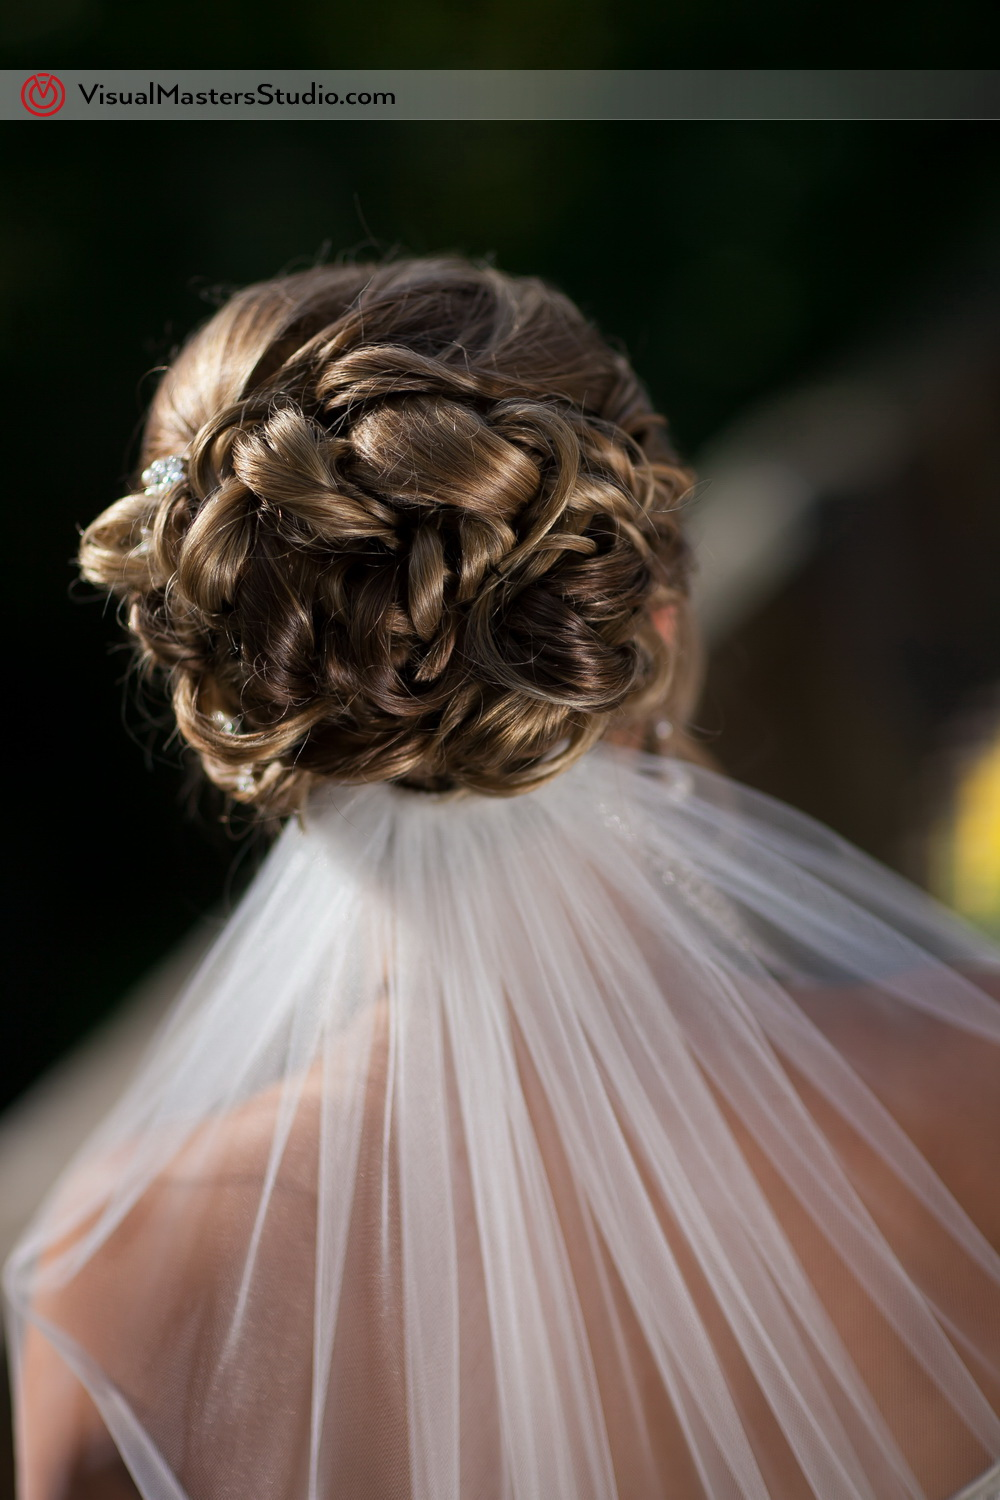 Bridal Hairstyles by Visual Masters